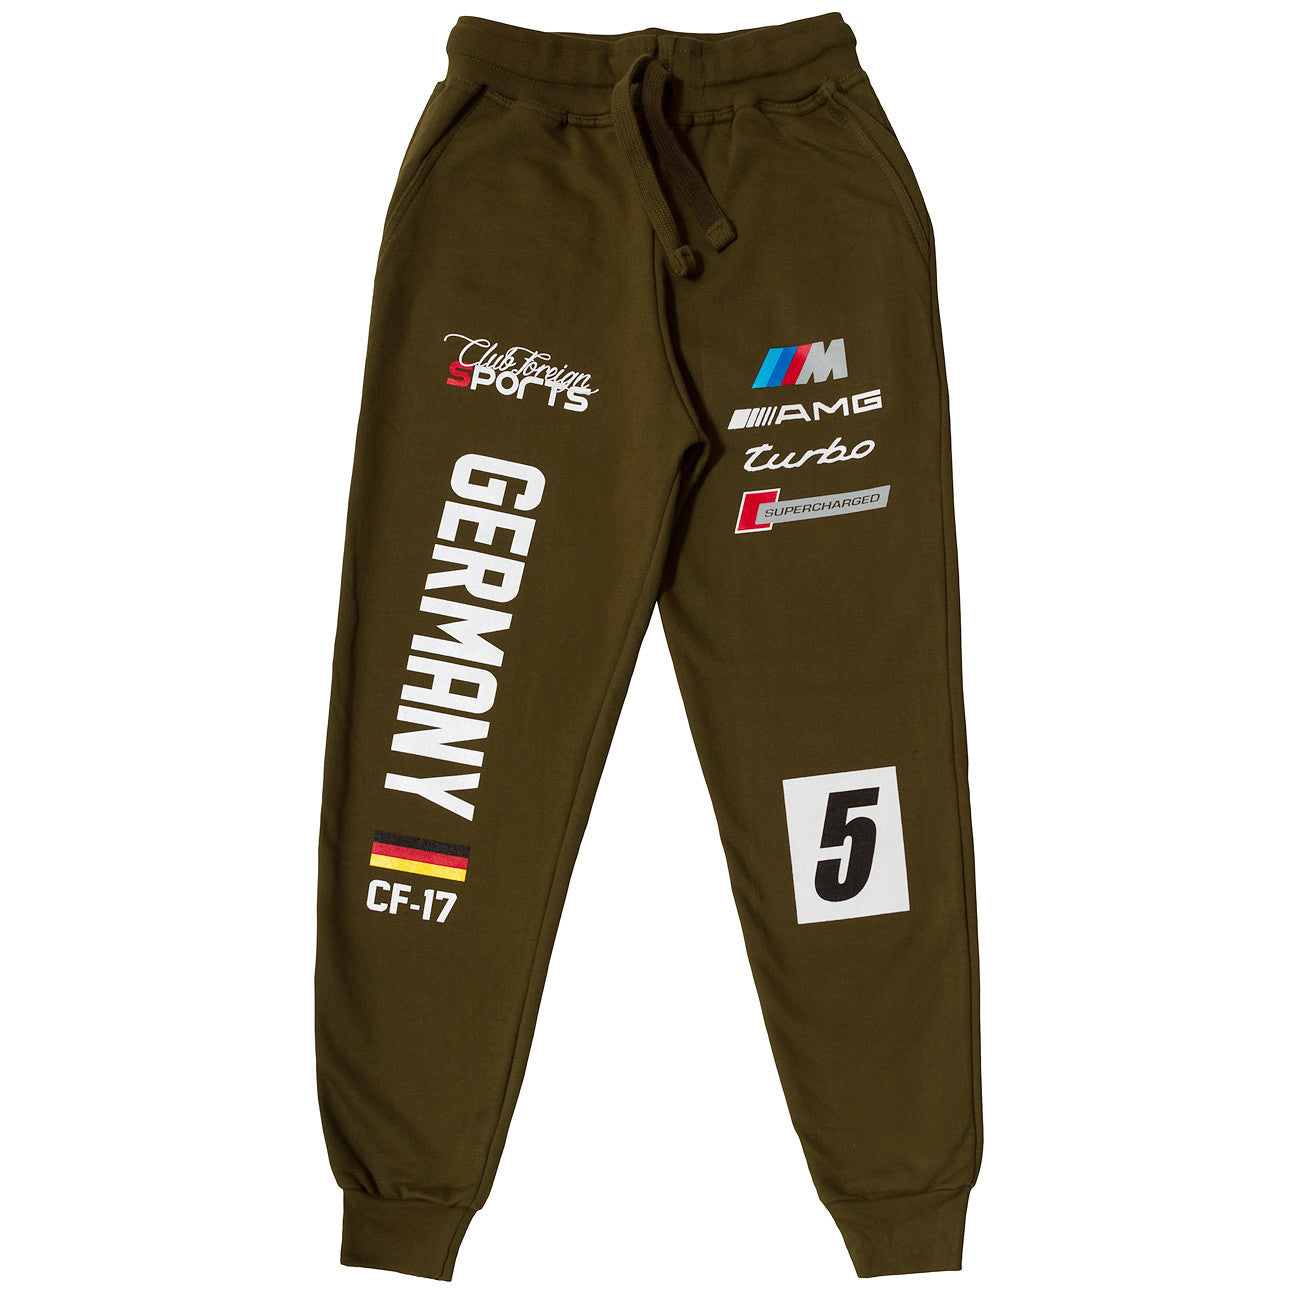 ClubForeign Sports Germany Series Pants Olive Green - Trends Society